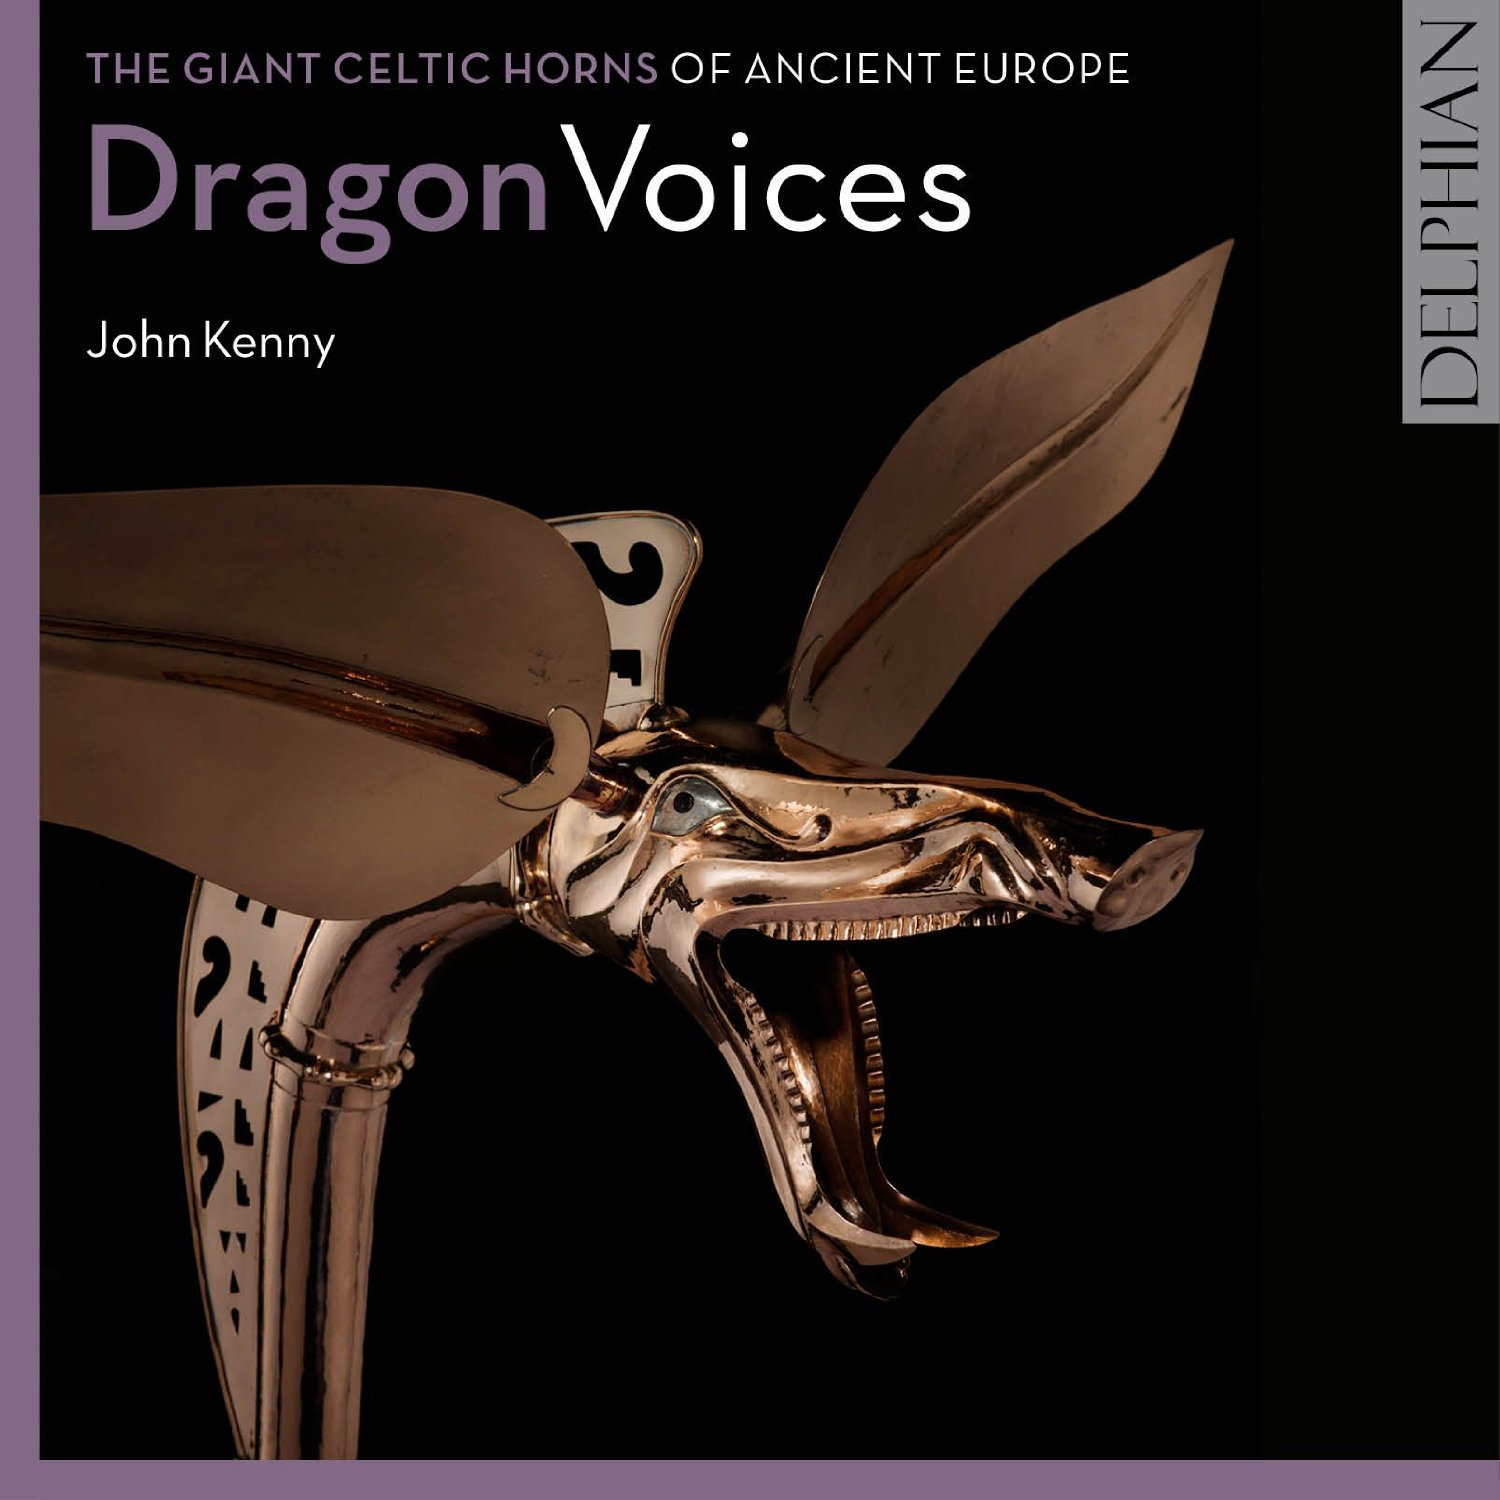 Dragon Voices: The Giant Celtic Horns of Ancient Europe